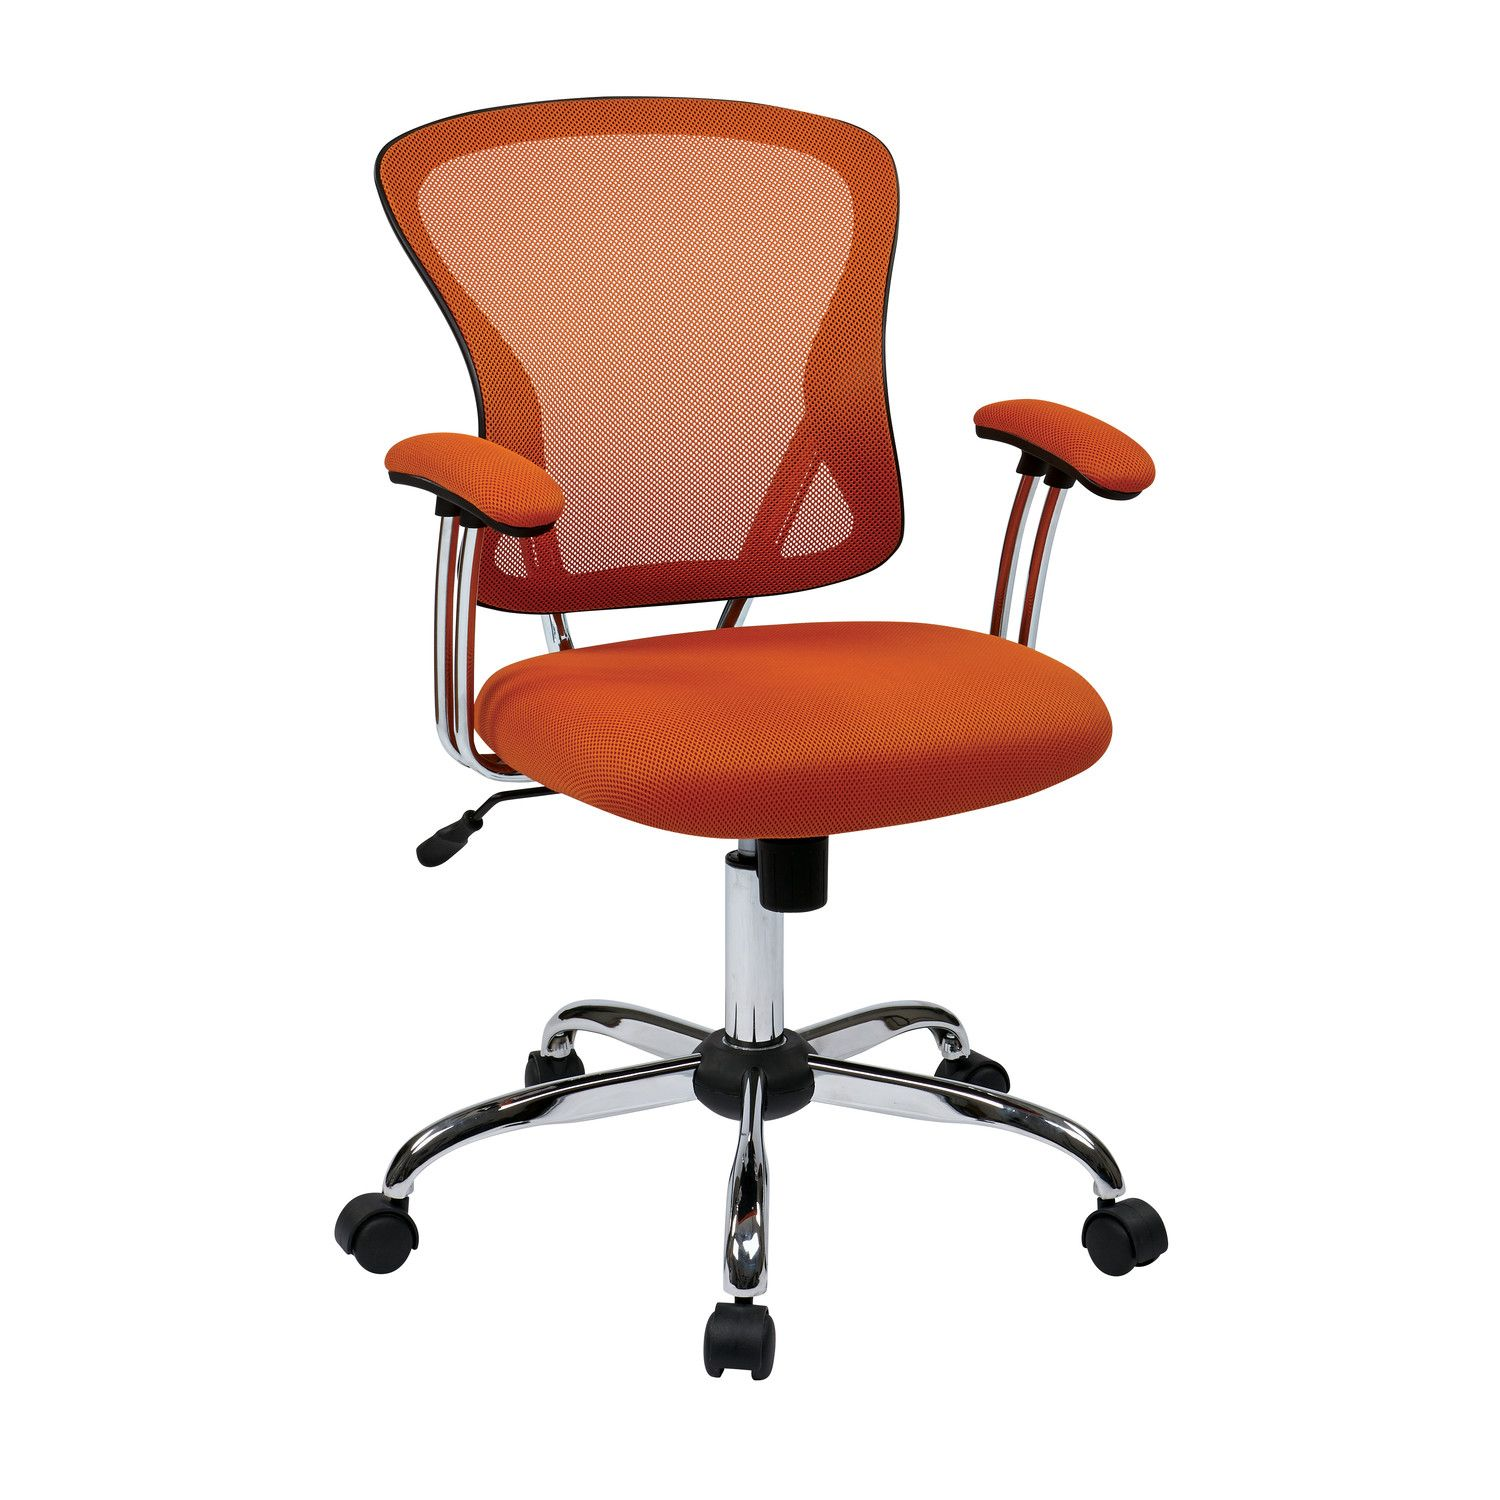 Depiction of 3 Best affordable office chairs under $100